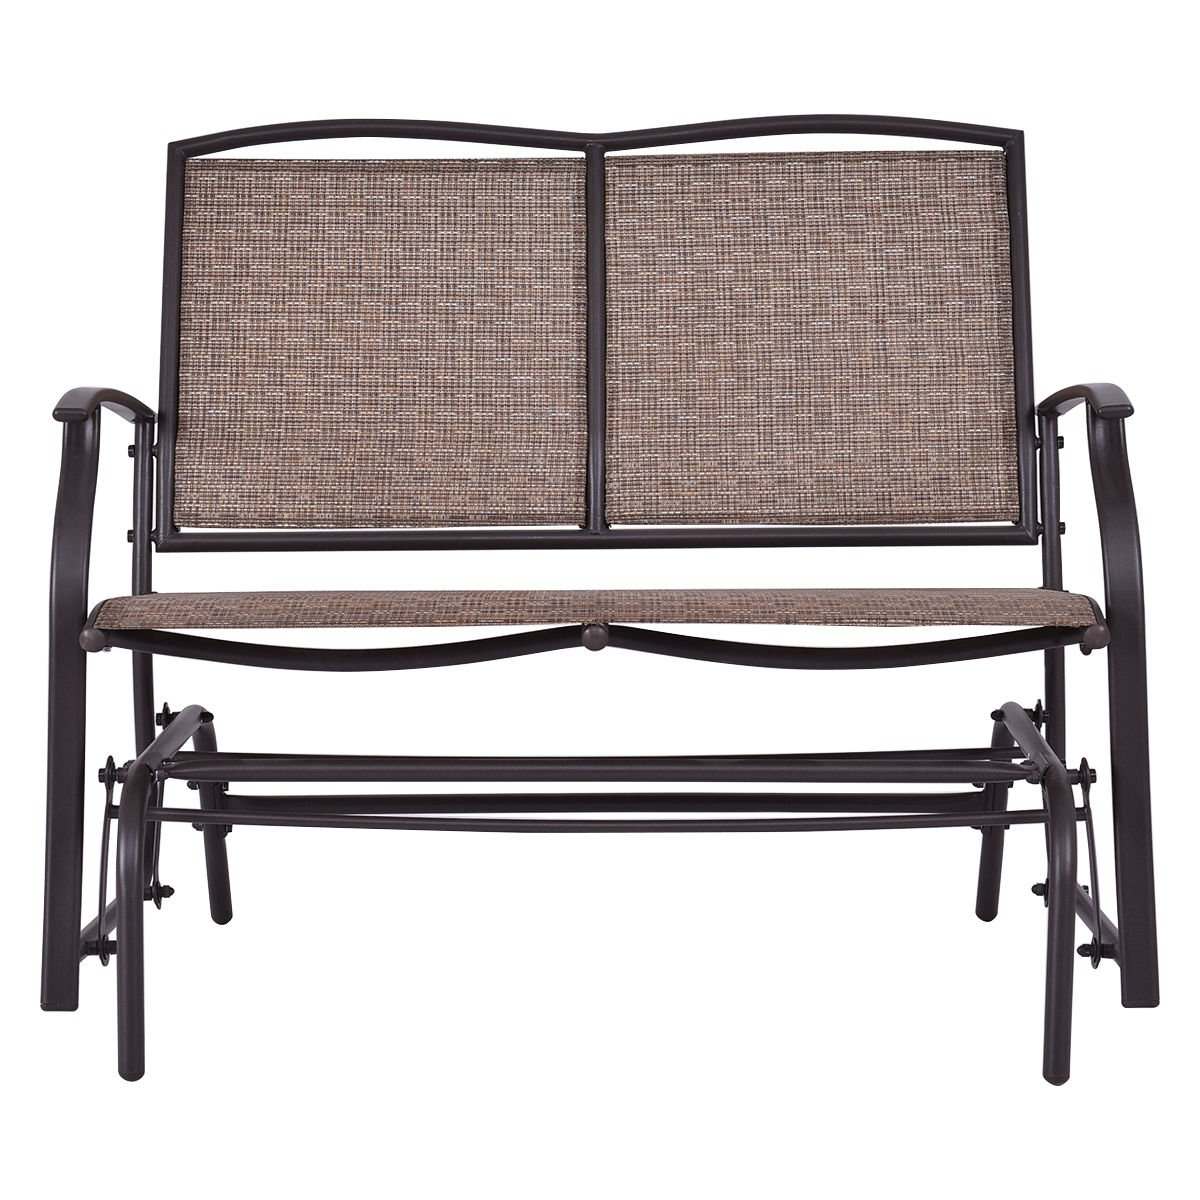 Amazon : Patio Glider Rocking Bench Double 2 Person Within Latest Twin Seat Glider Benches (View 5 of 31)